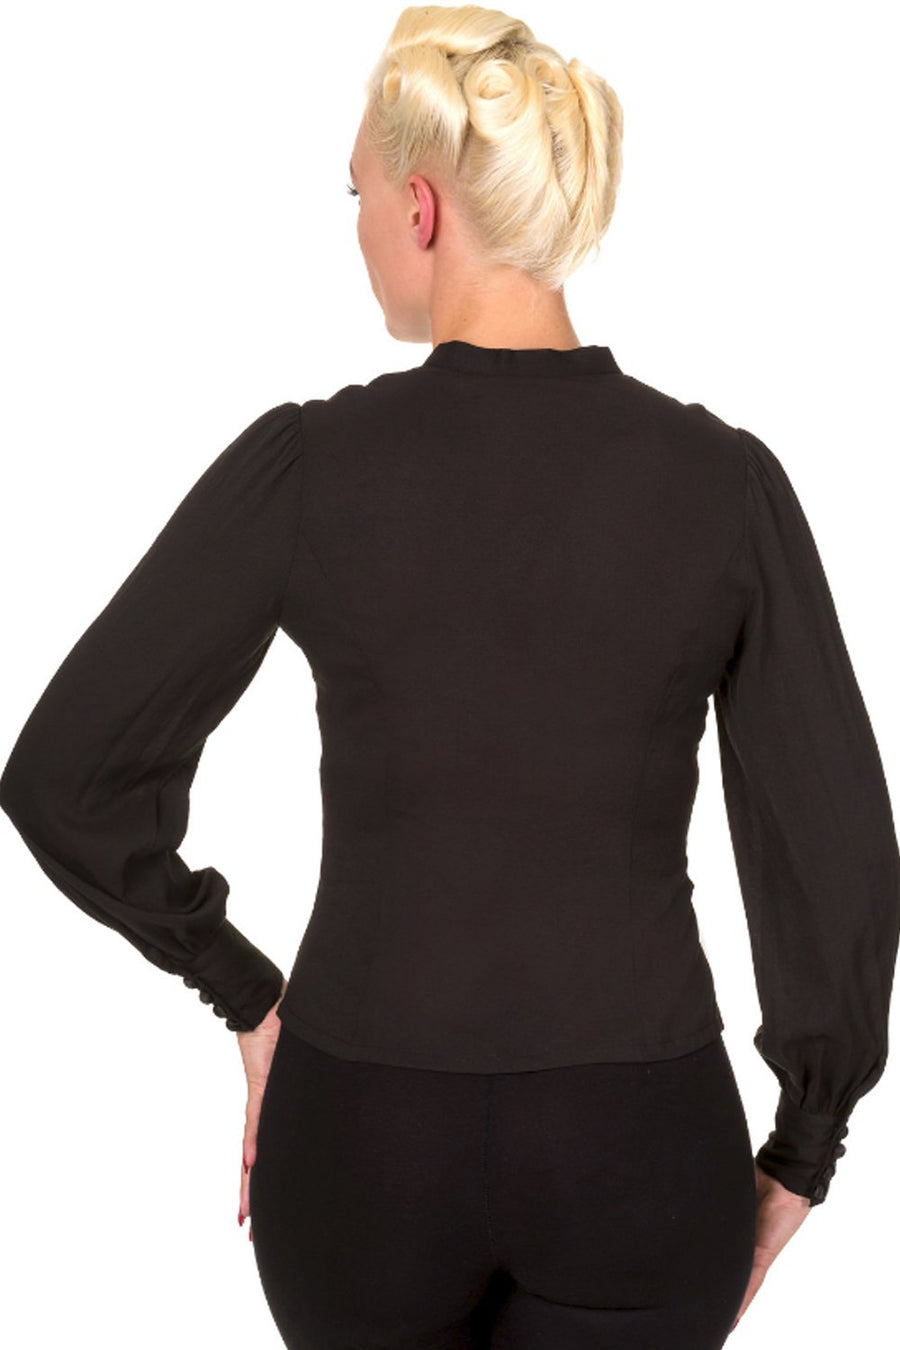 Fitted Black Long Sleeve Blouse